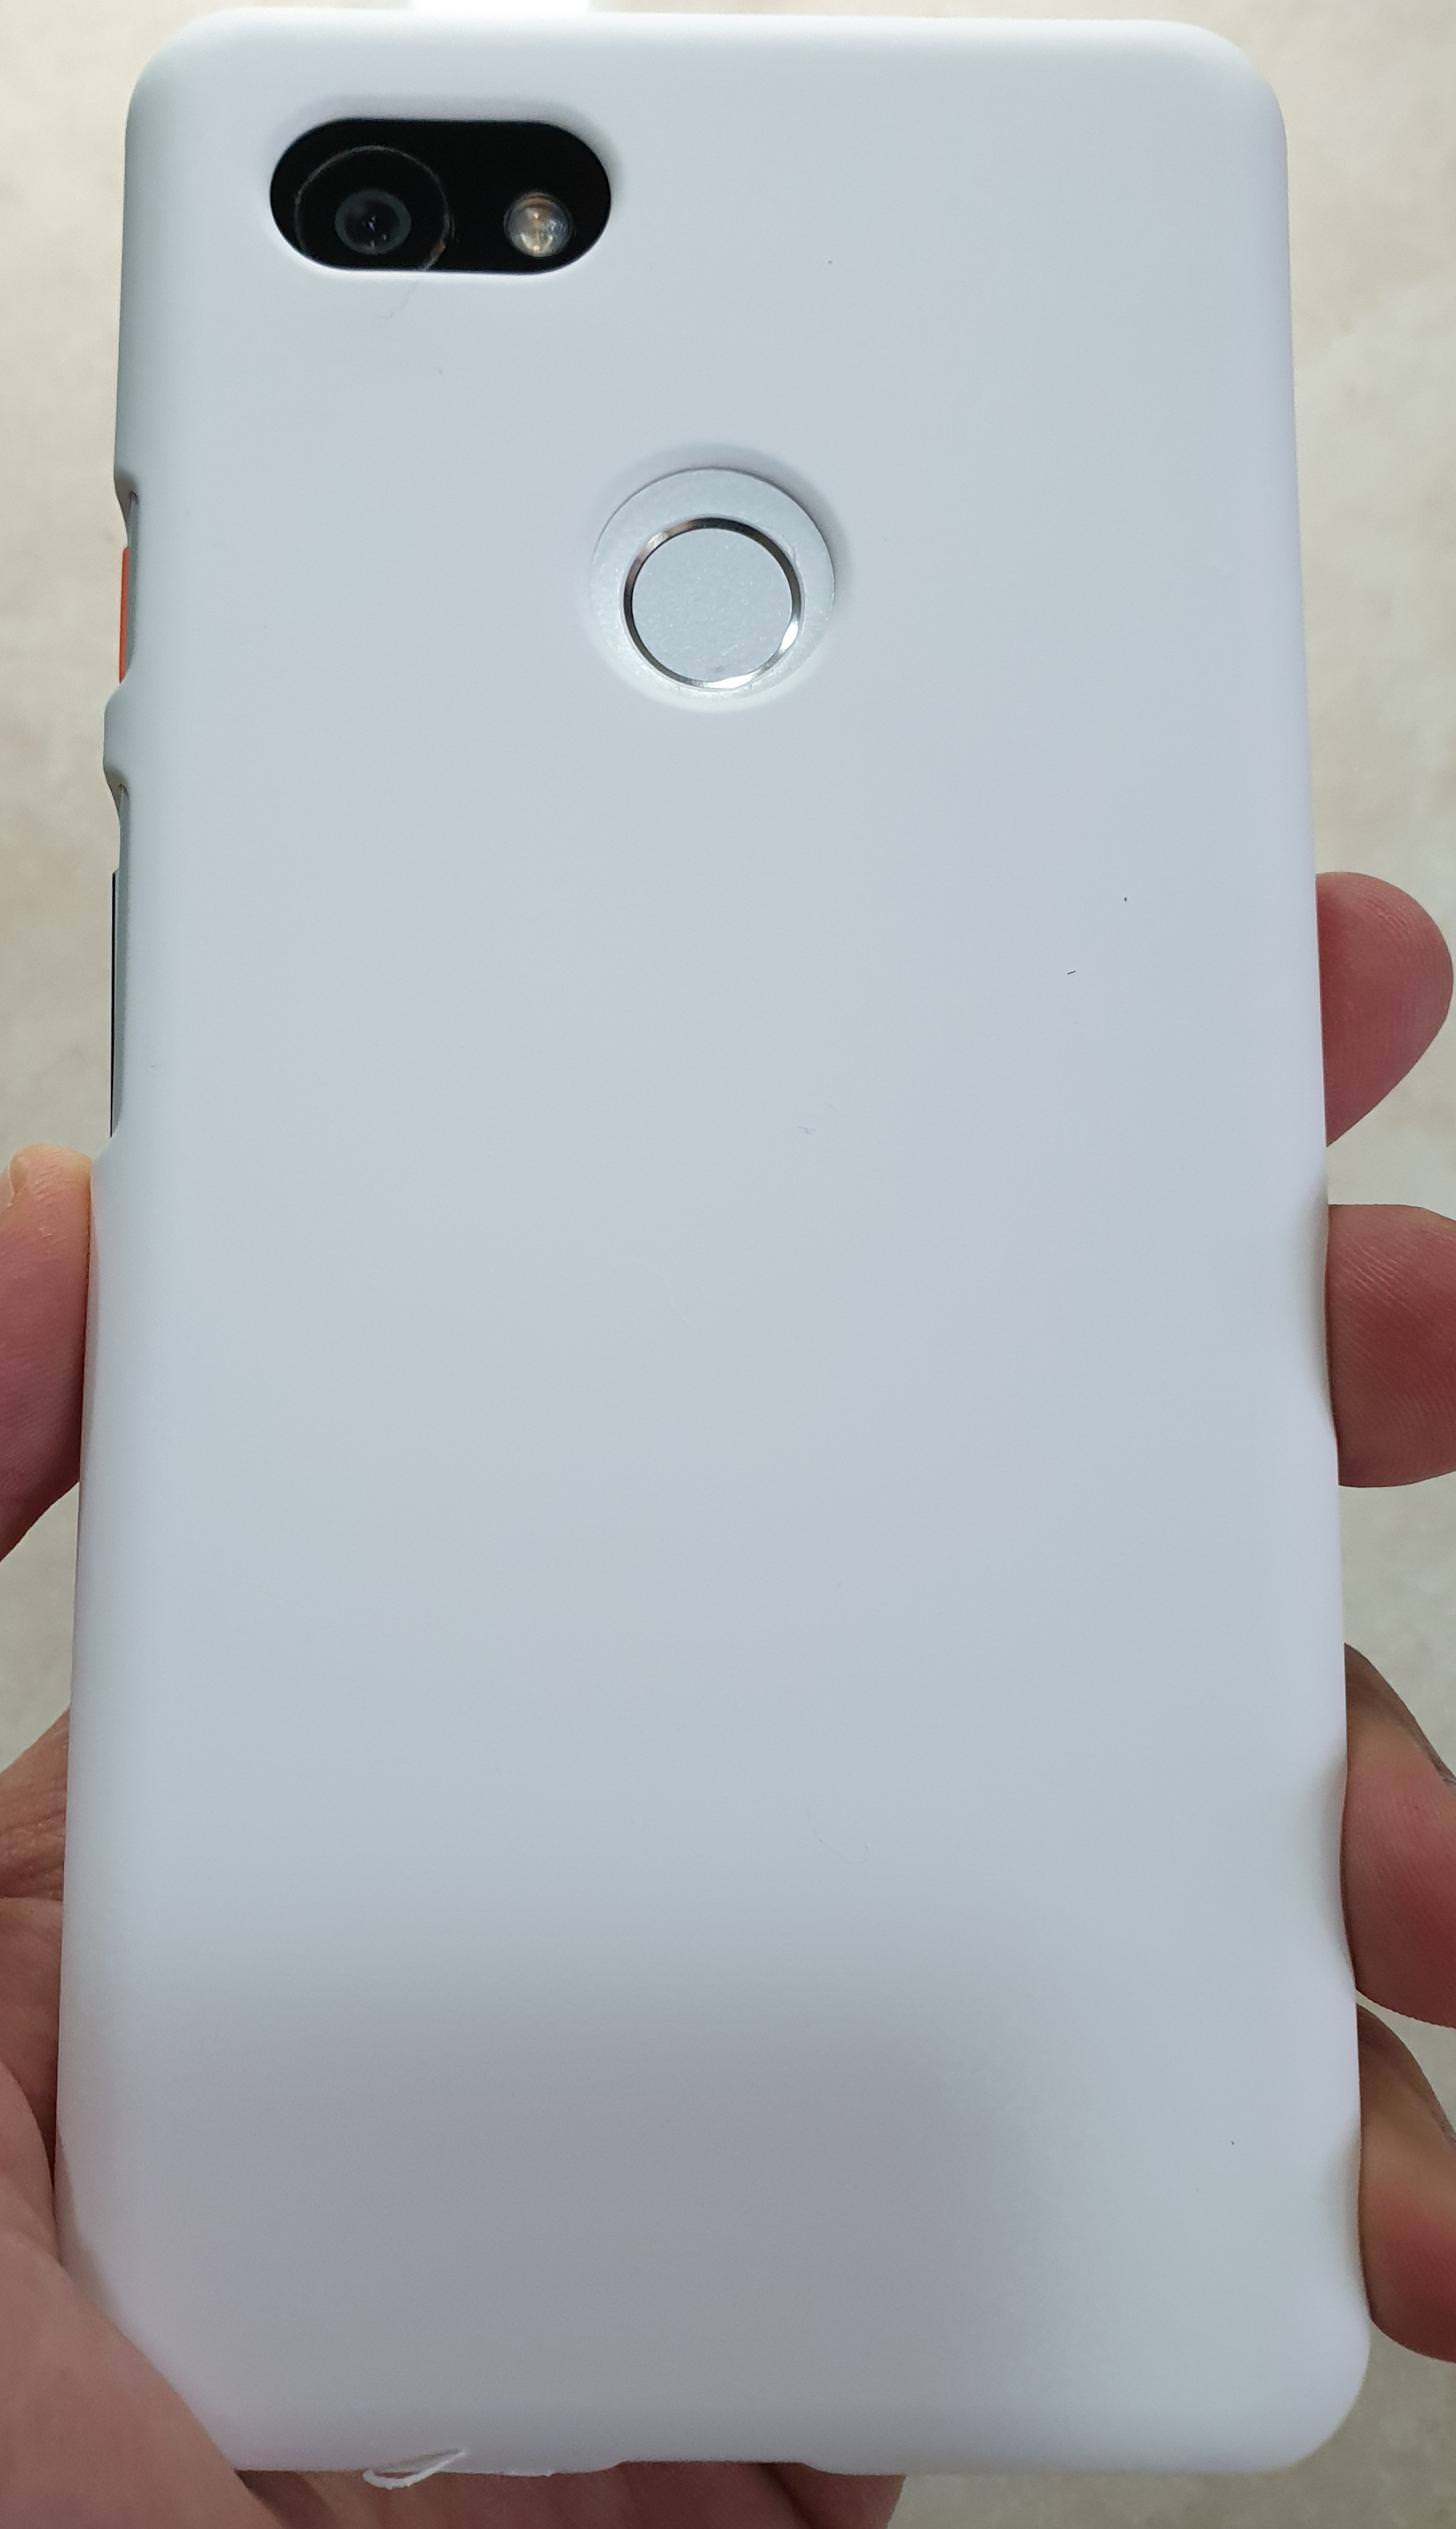 competitive price c3785 22d3e Images show how Google Pixel 3 XL cases fit on Pixel 2 XL - 9to5Google